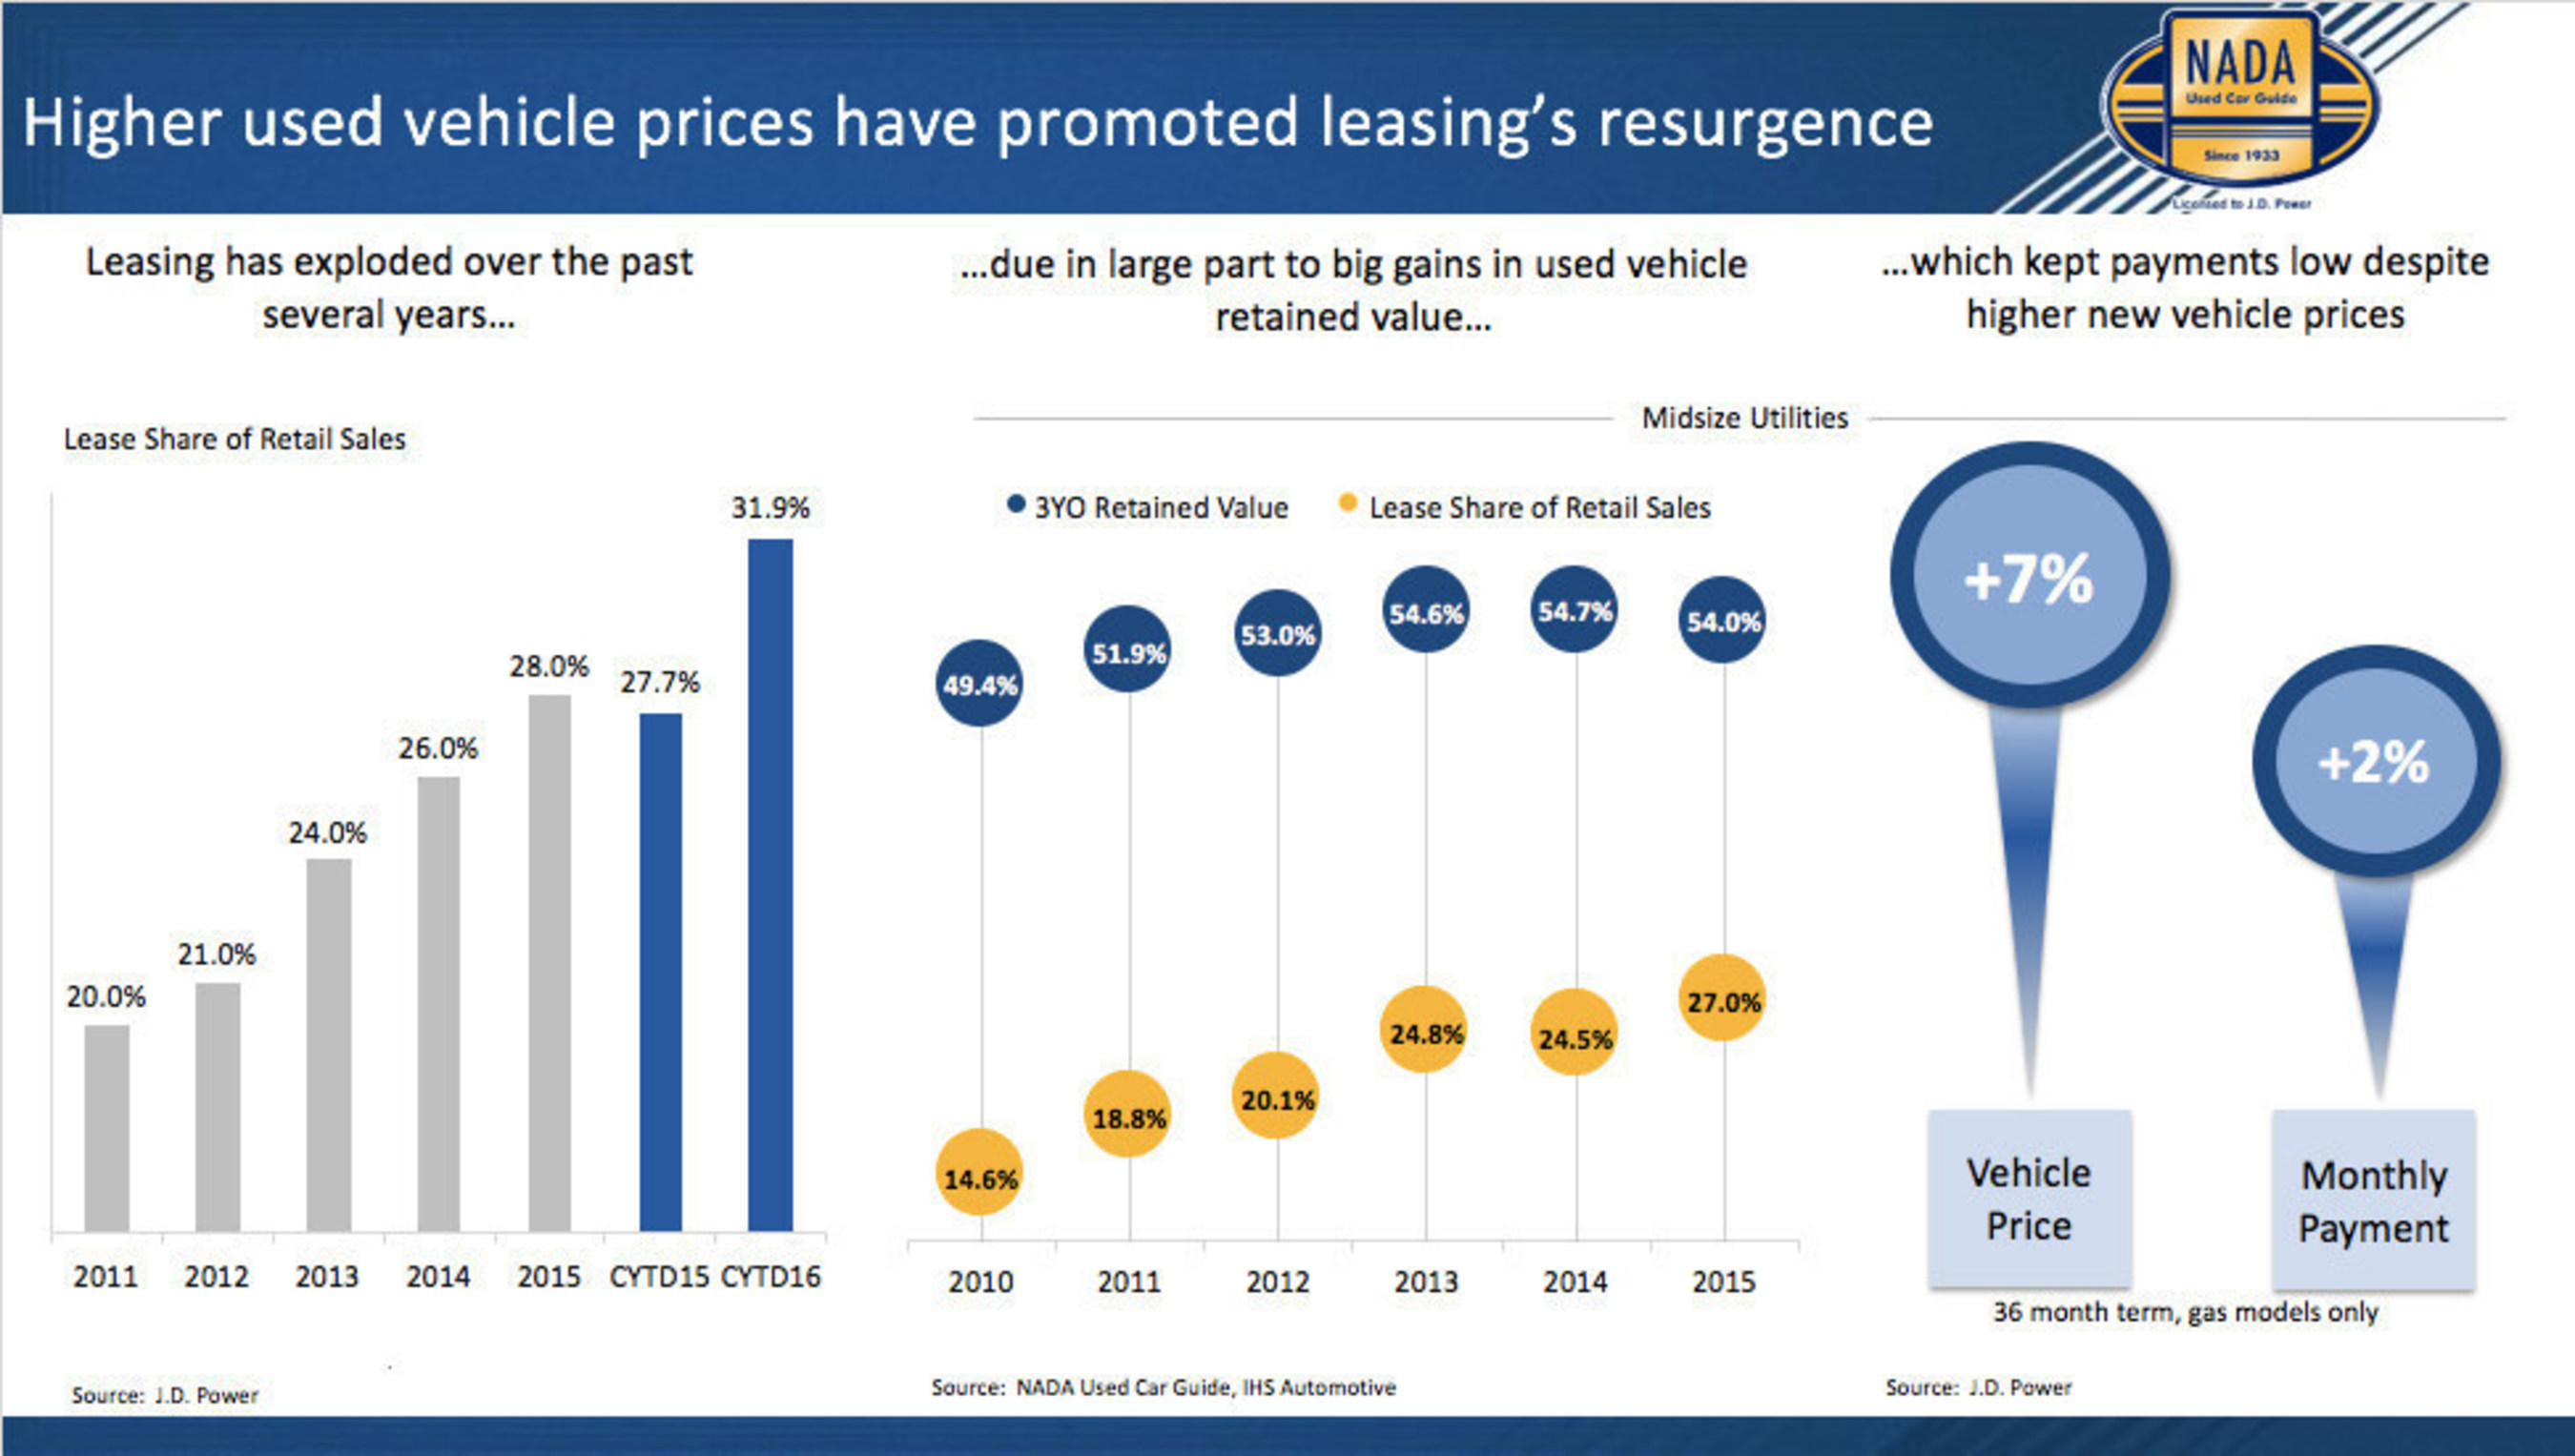 NADA Used Car Guide Provides Used Vehicle Market Forecast at 2016 ...